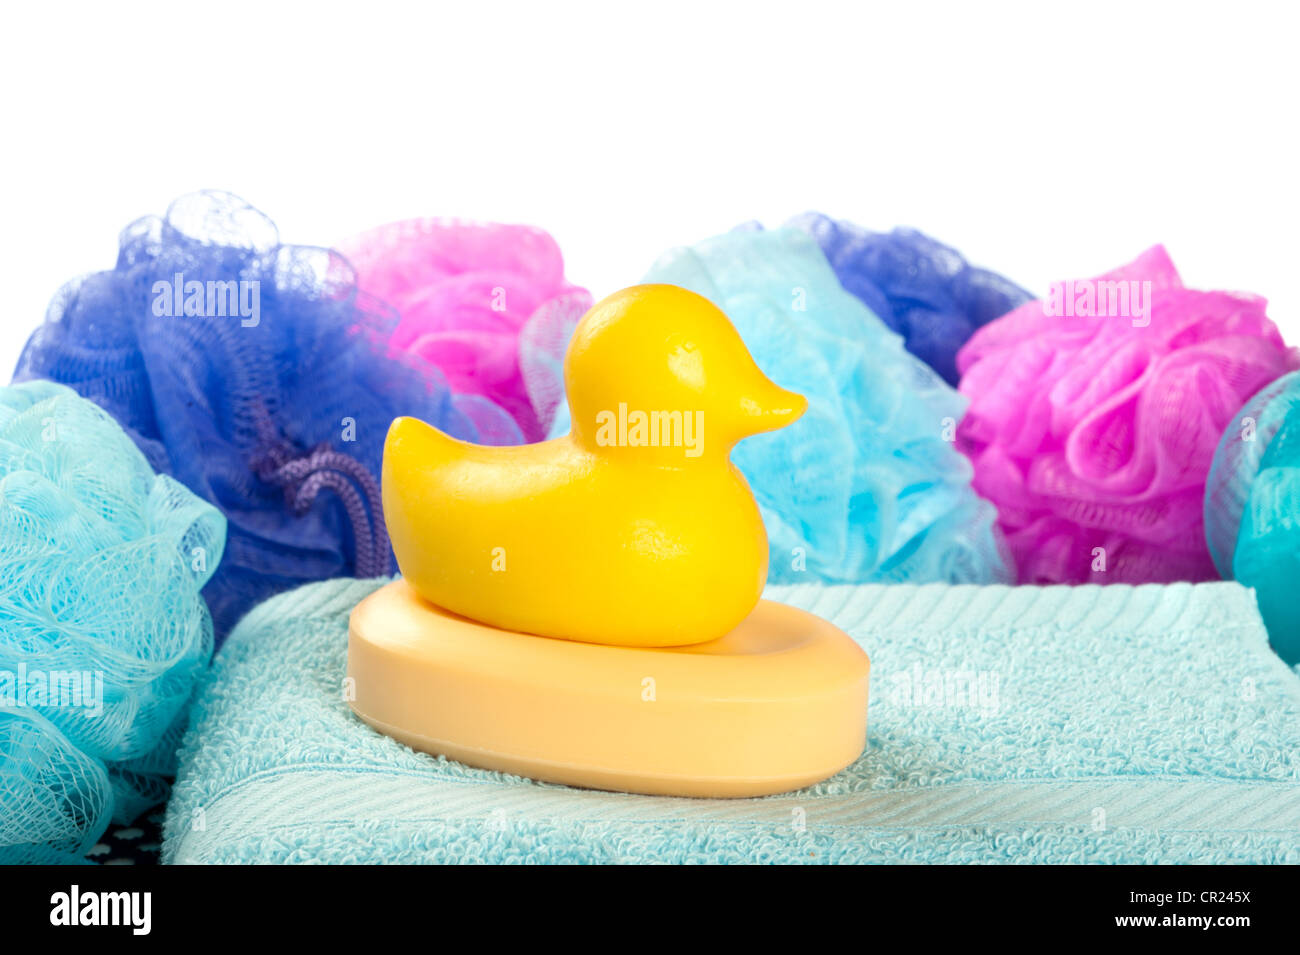 A yellow duck shaped bar of shower soap on a light blue towel with shower poufs against a white background. - Stock Image